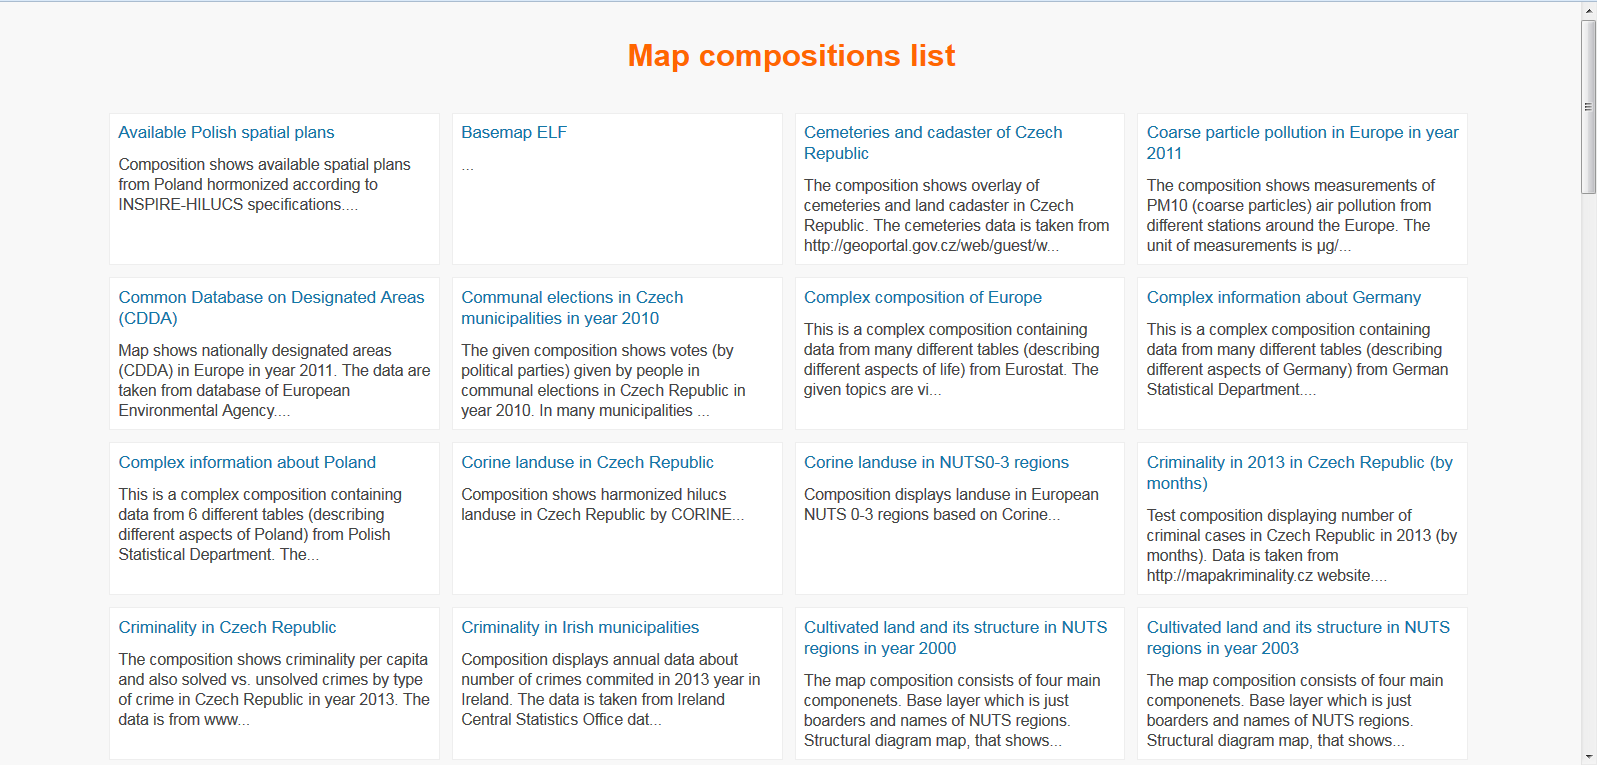 map-compissition-list